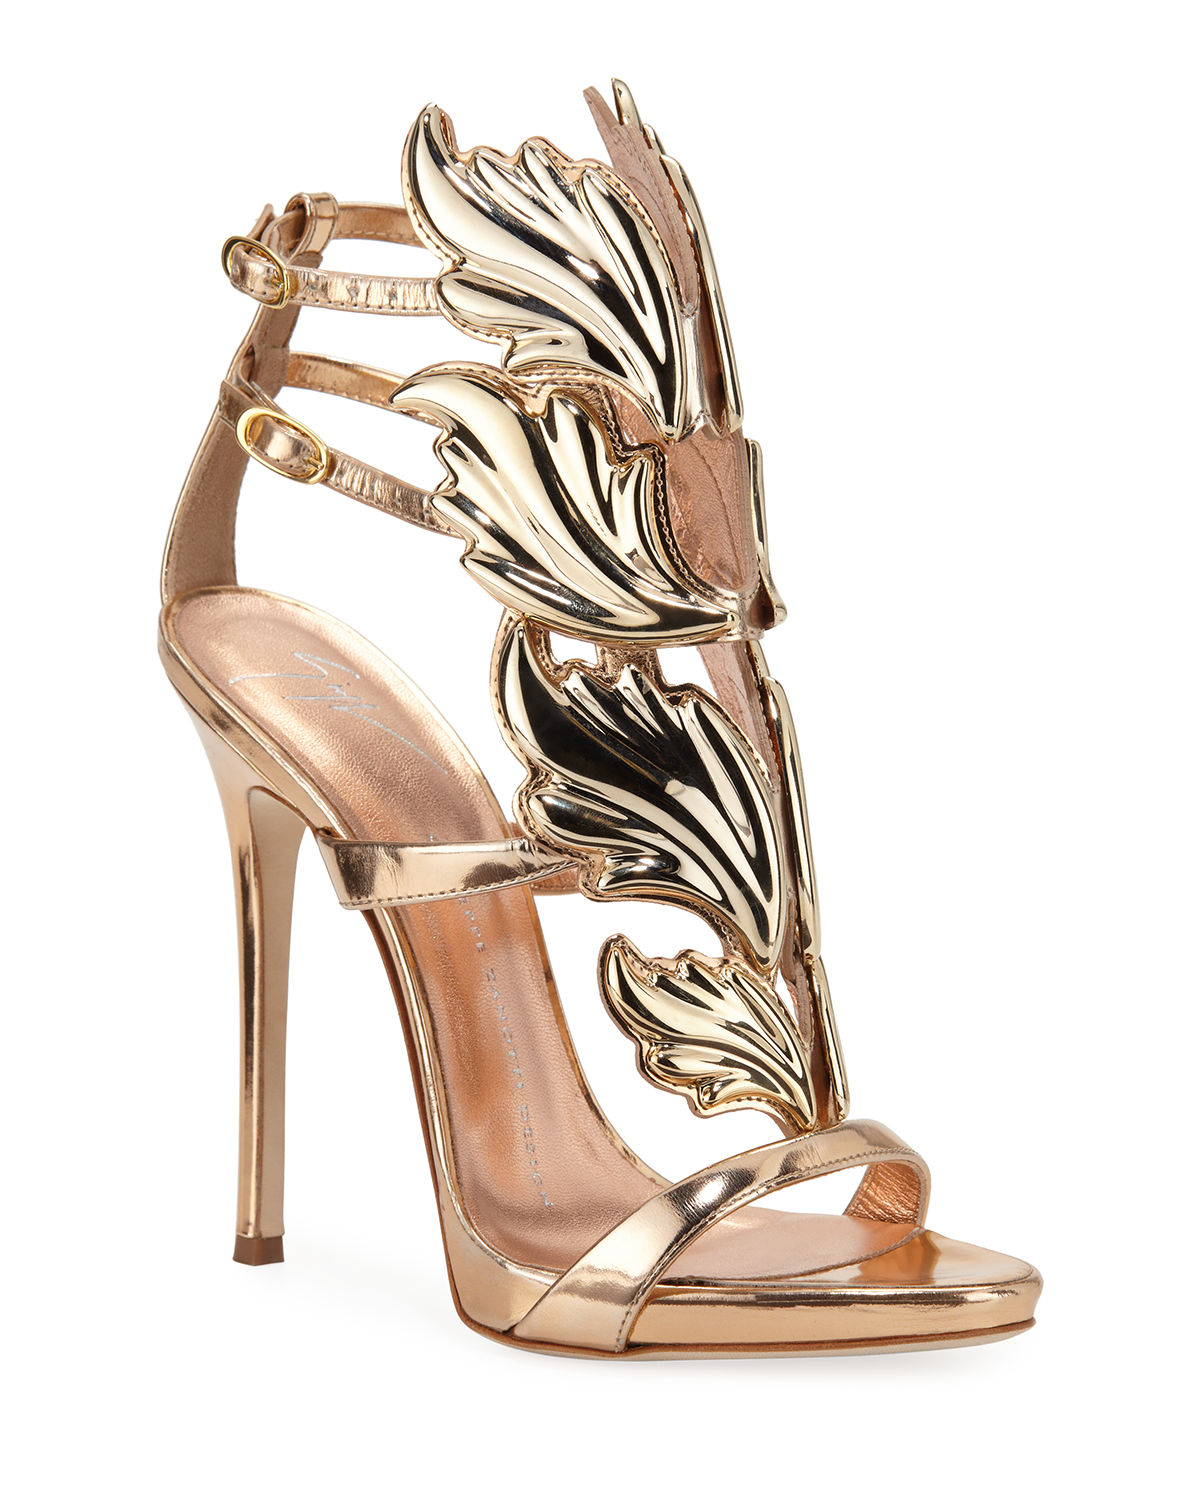 c30cd6c895f Giuseppe Zanotti Coline Wings Suede 110mm Sandals